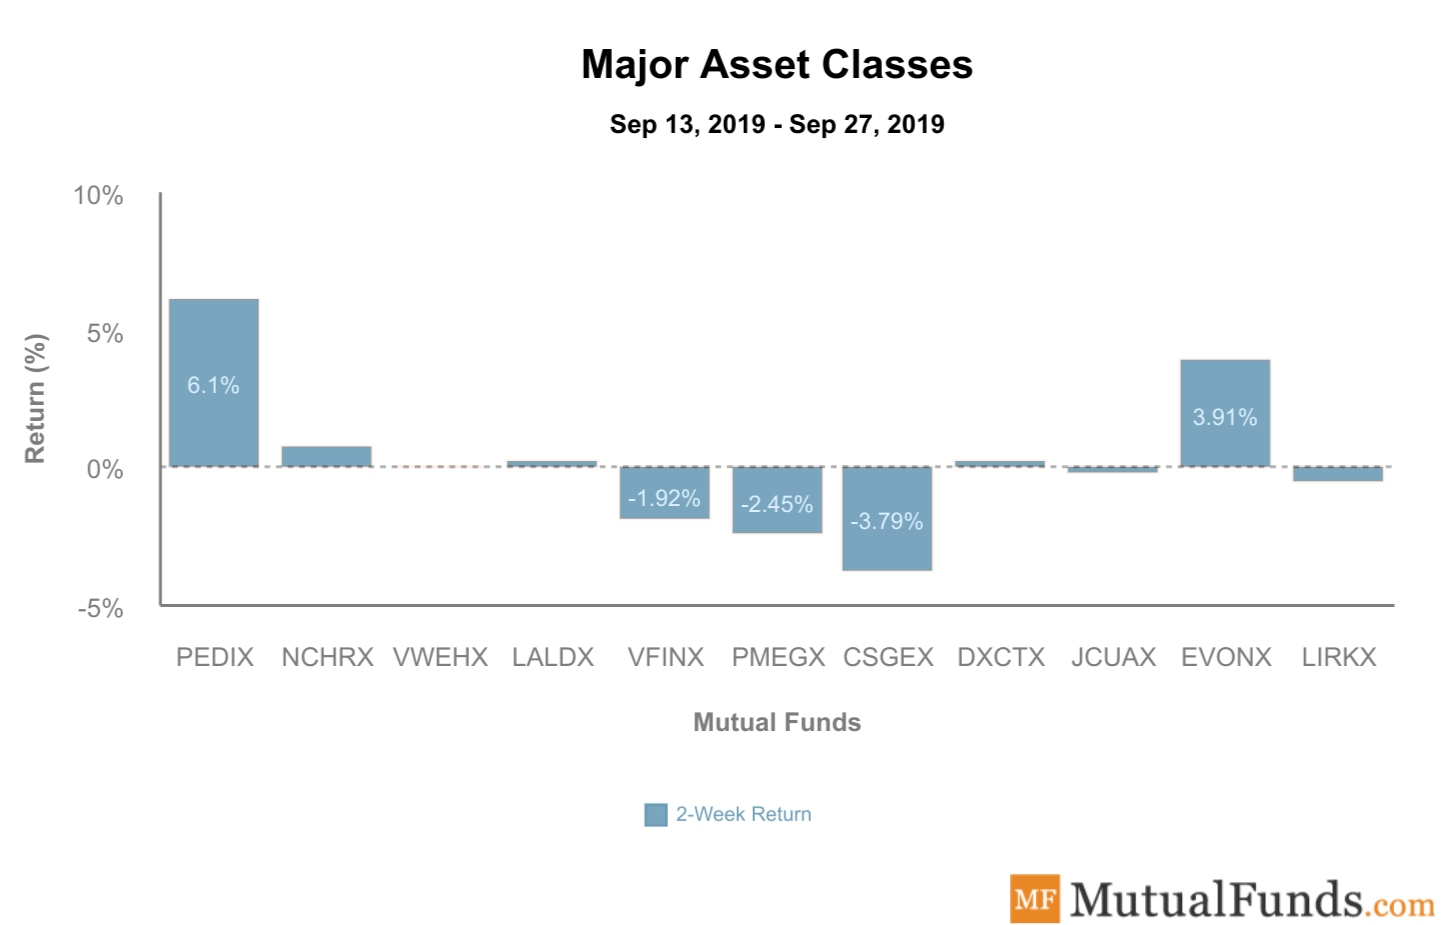 Major Asset Classes Oct 1 2019